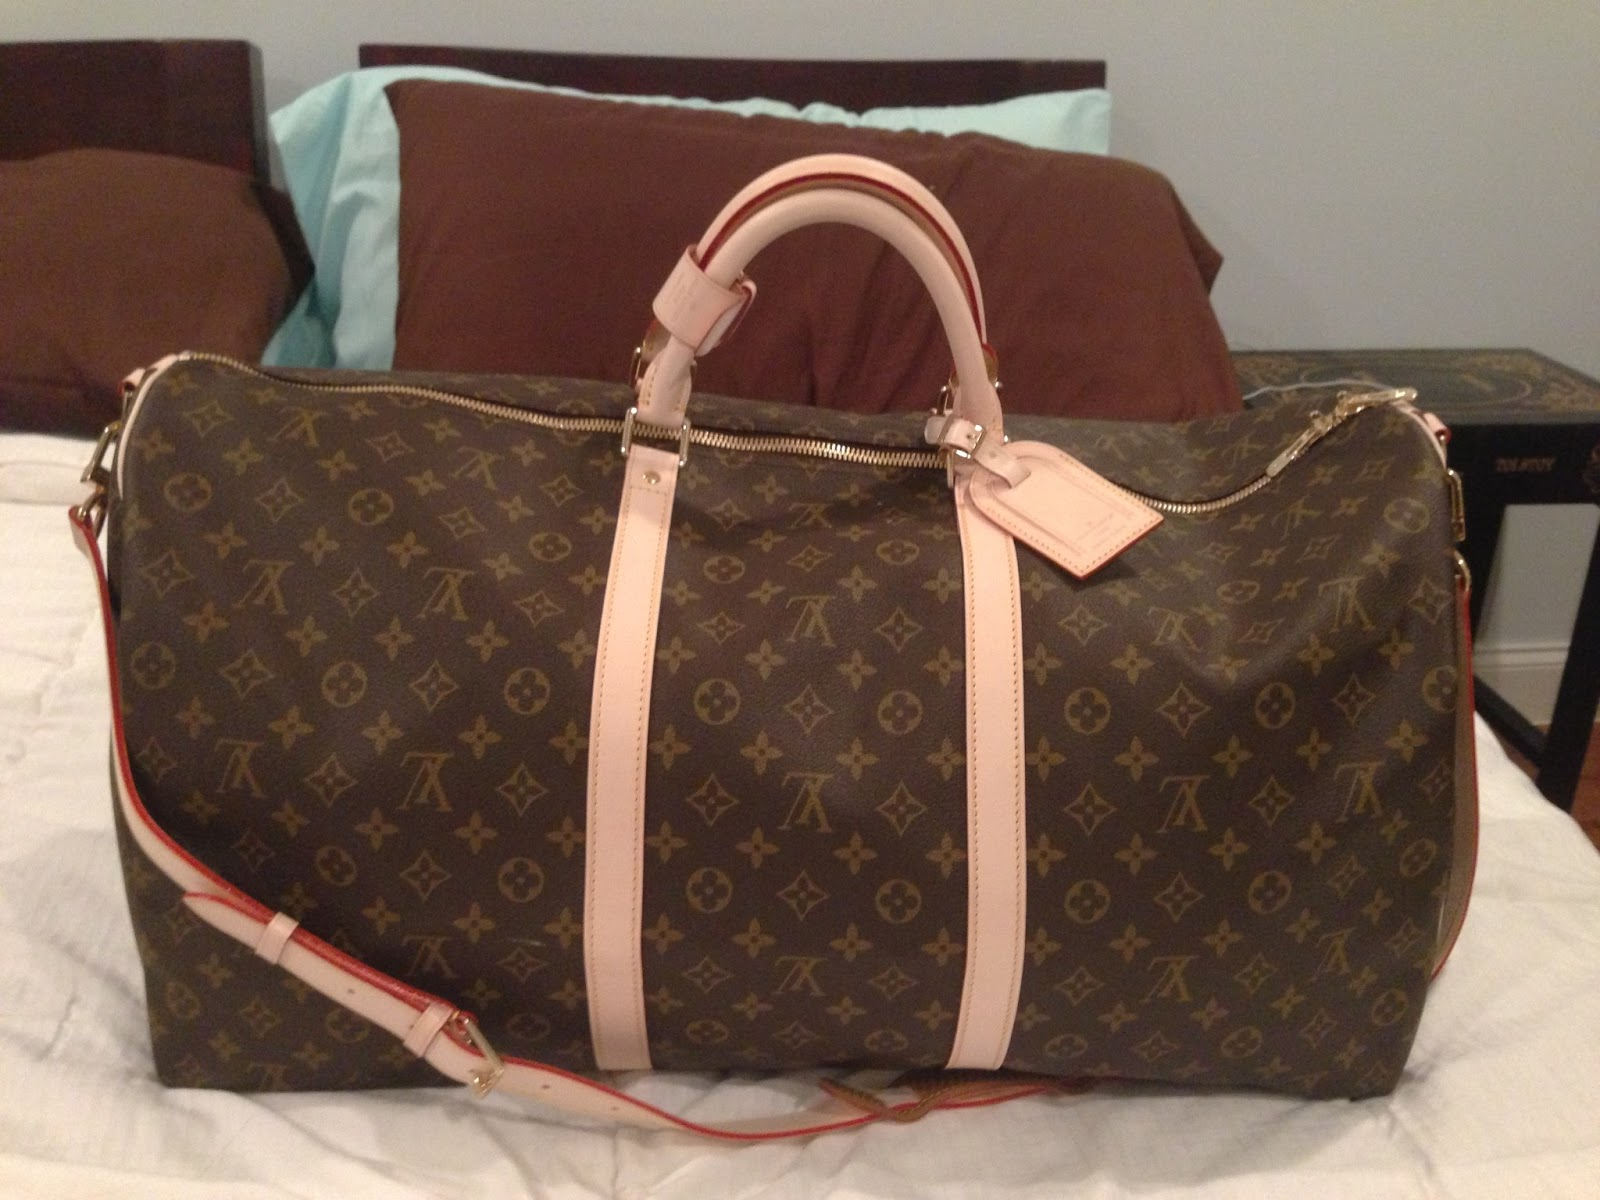 purse princess replica louis vuitton monogram keepall 60 by kate. Black Bedroom Furniture Sets. Home Design Ideas